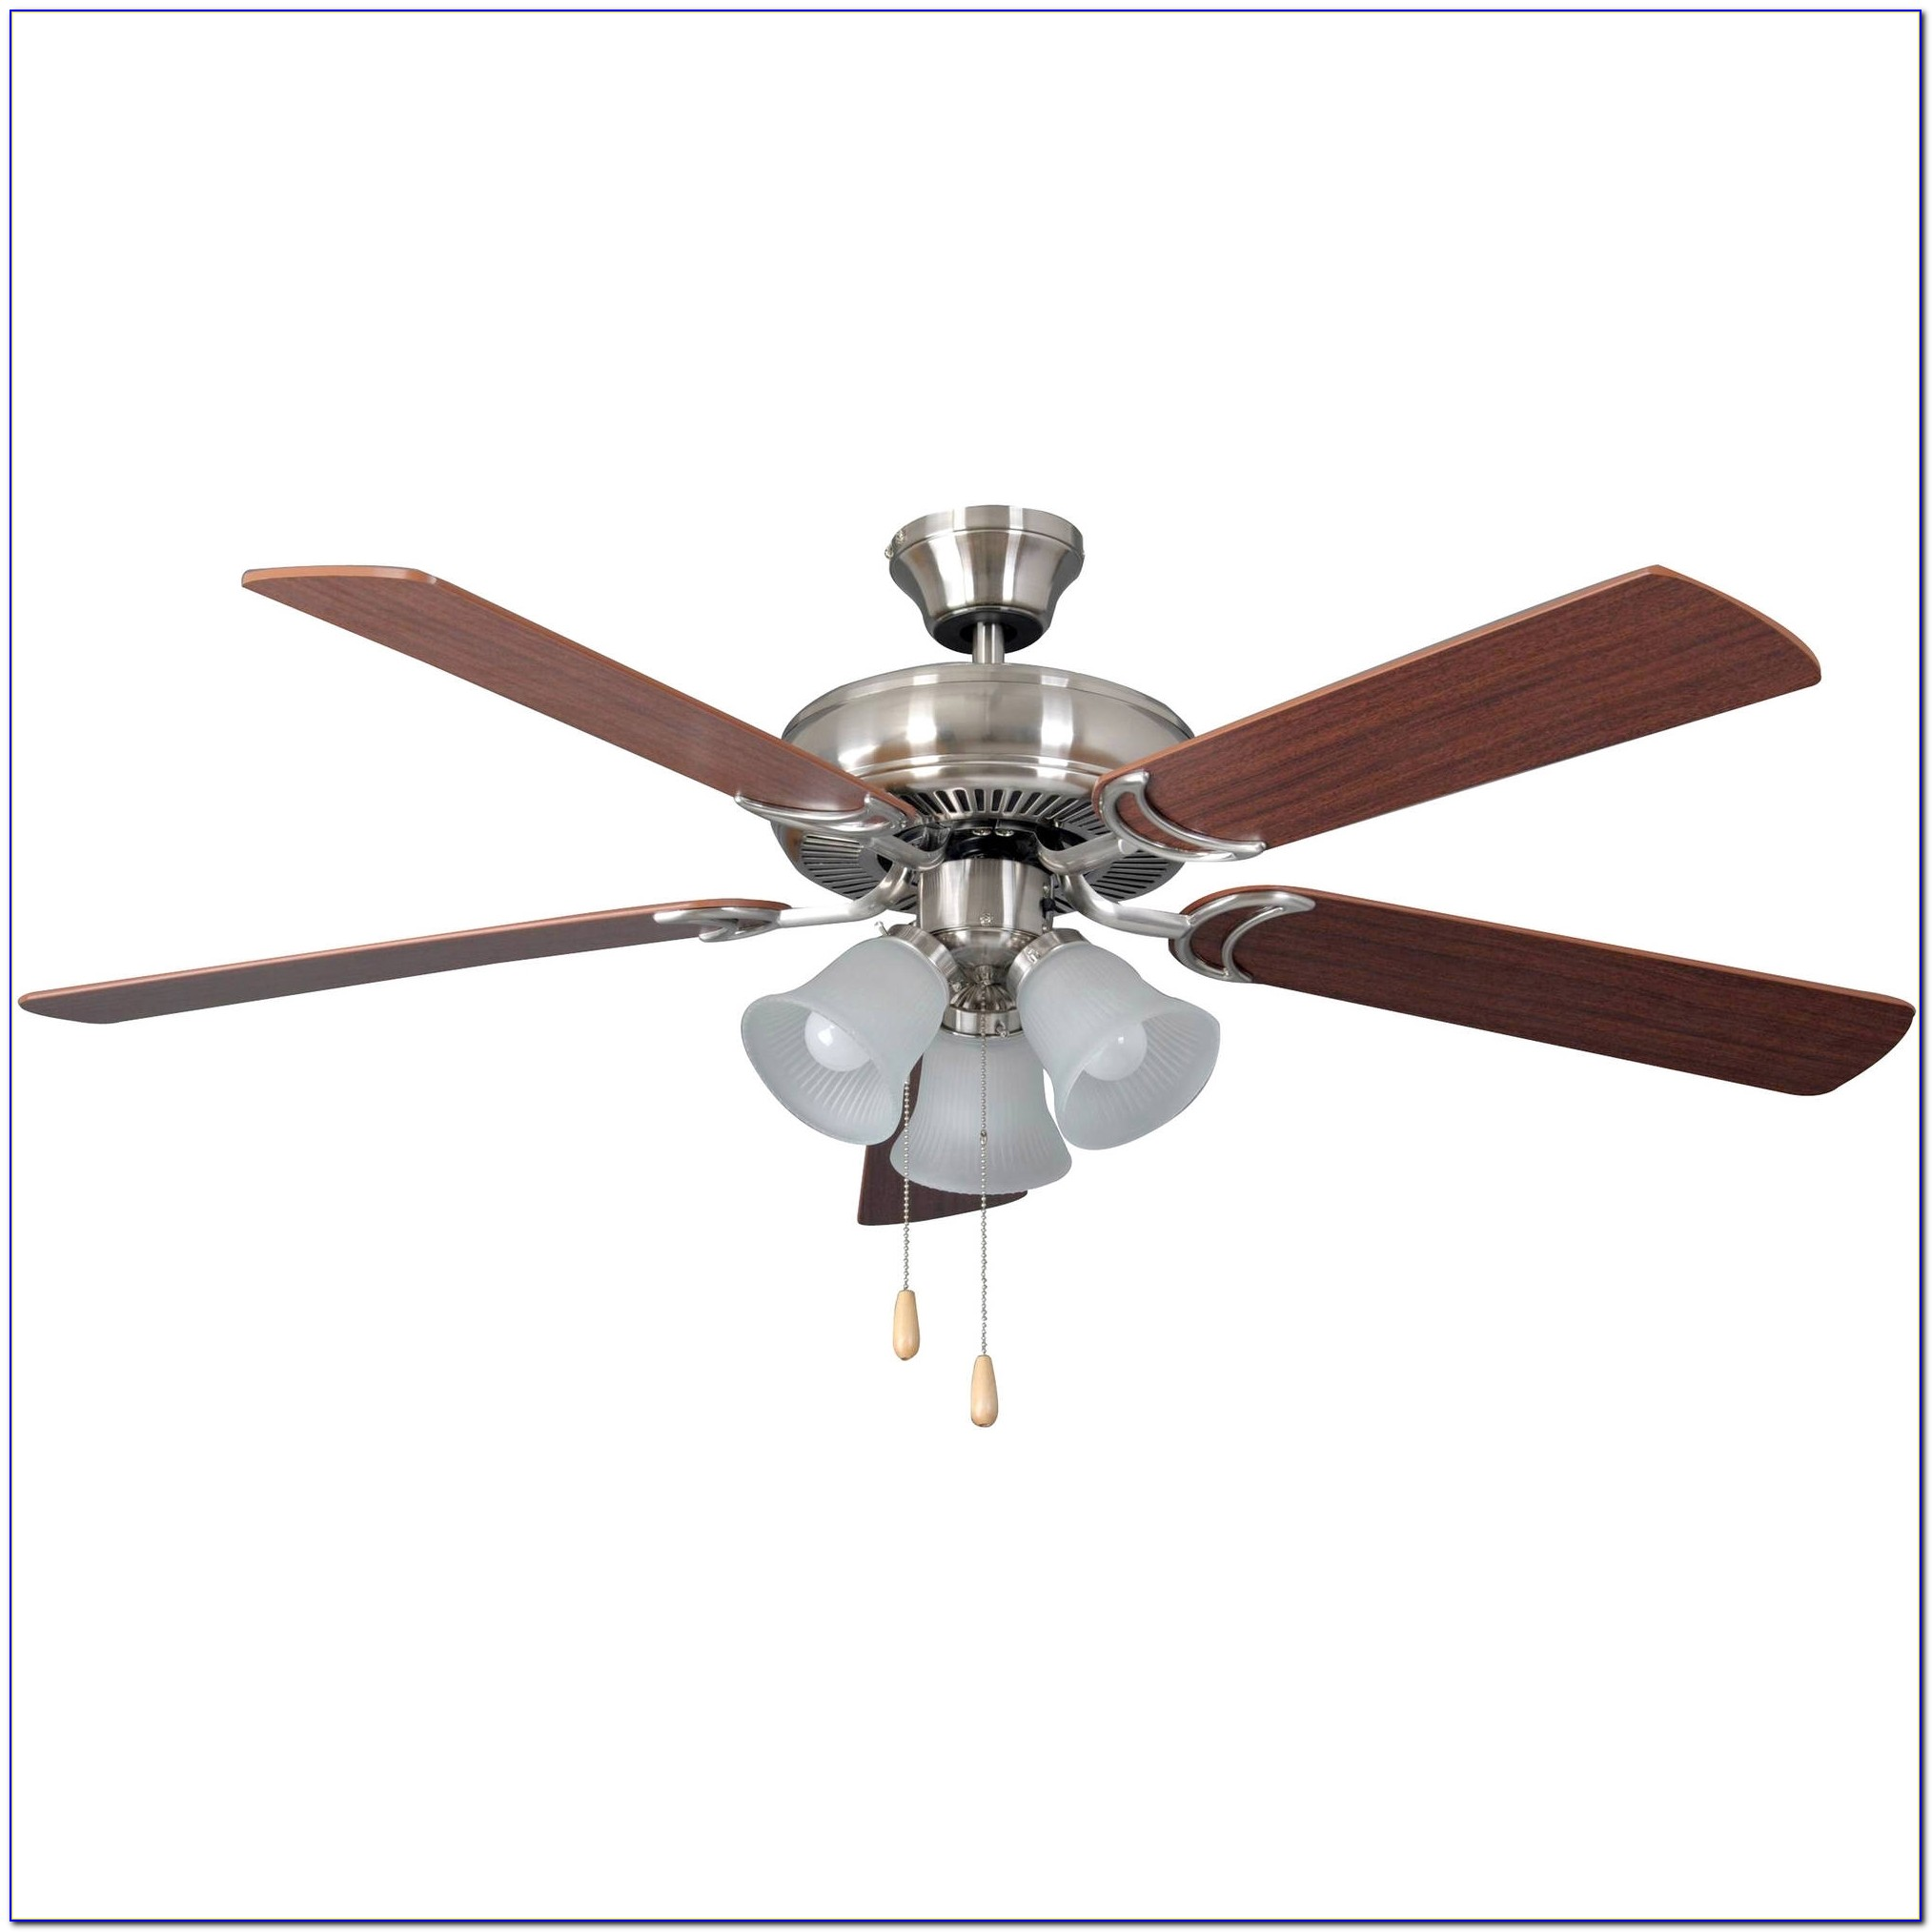 Hampton Bay Ceiling Fan Control Remote